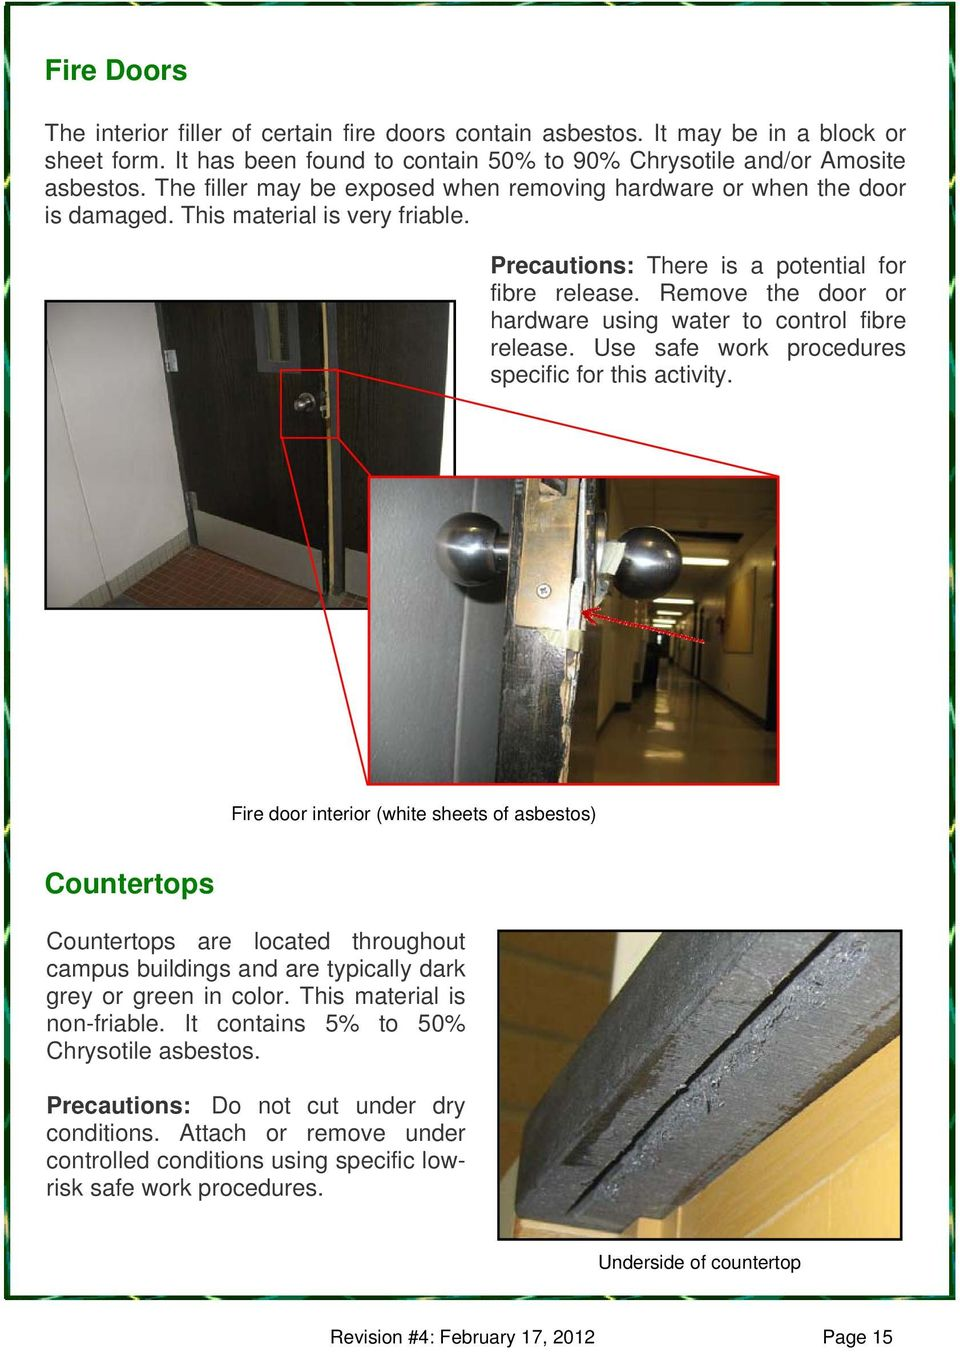 Remove the door or hardware using water to control fibre release. Use safe work procedures specific for this activity.